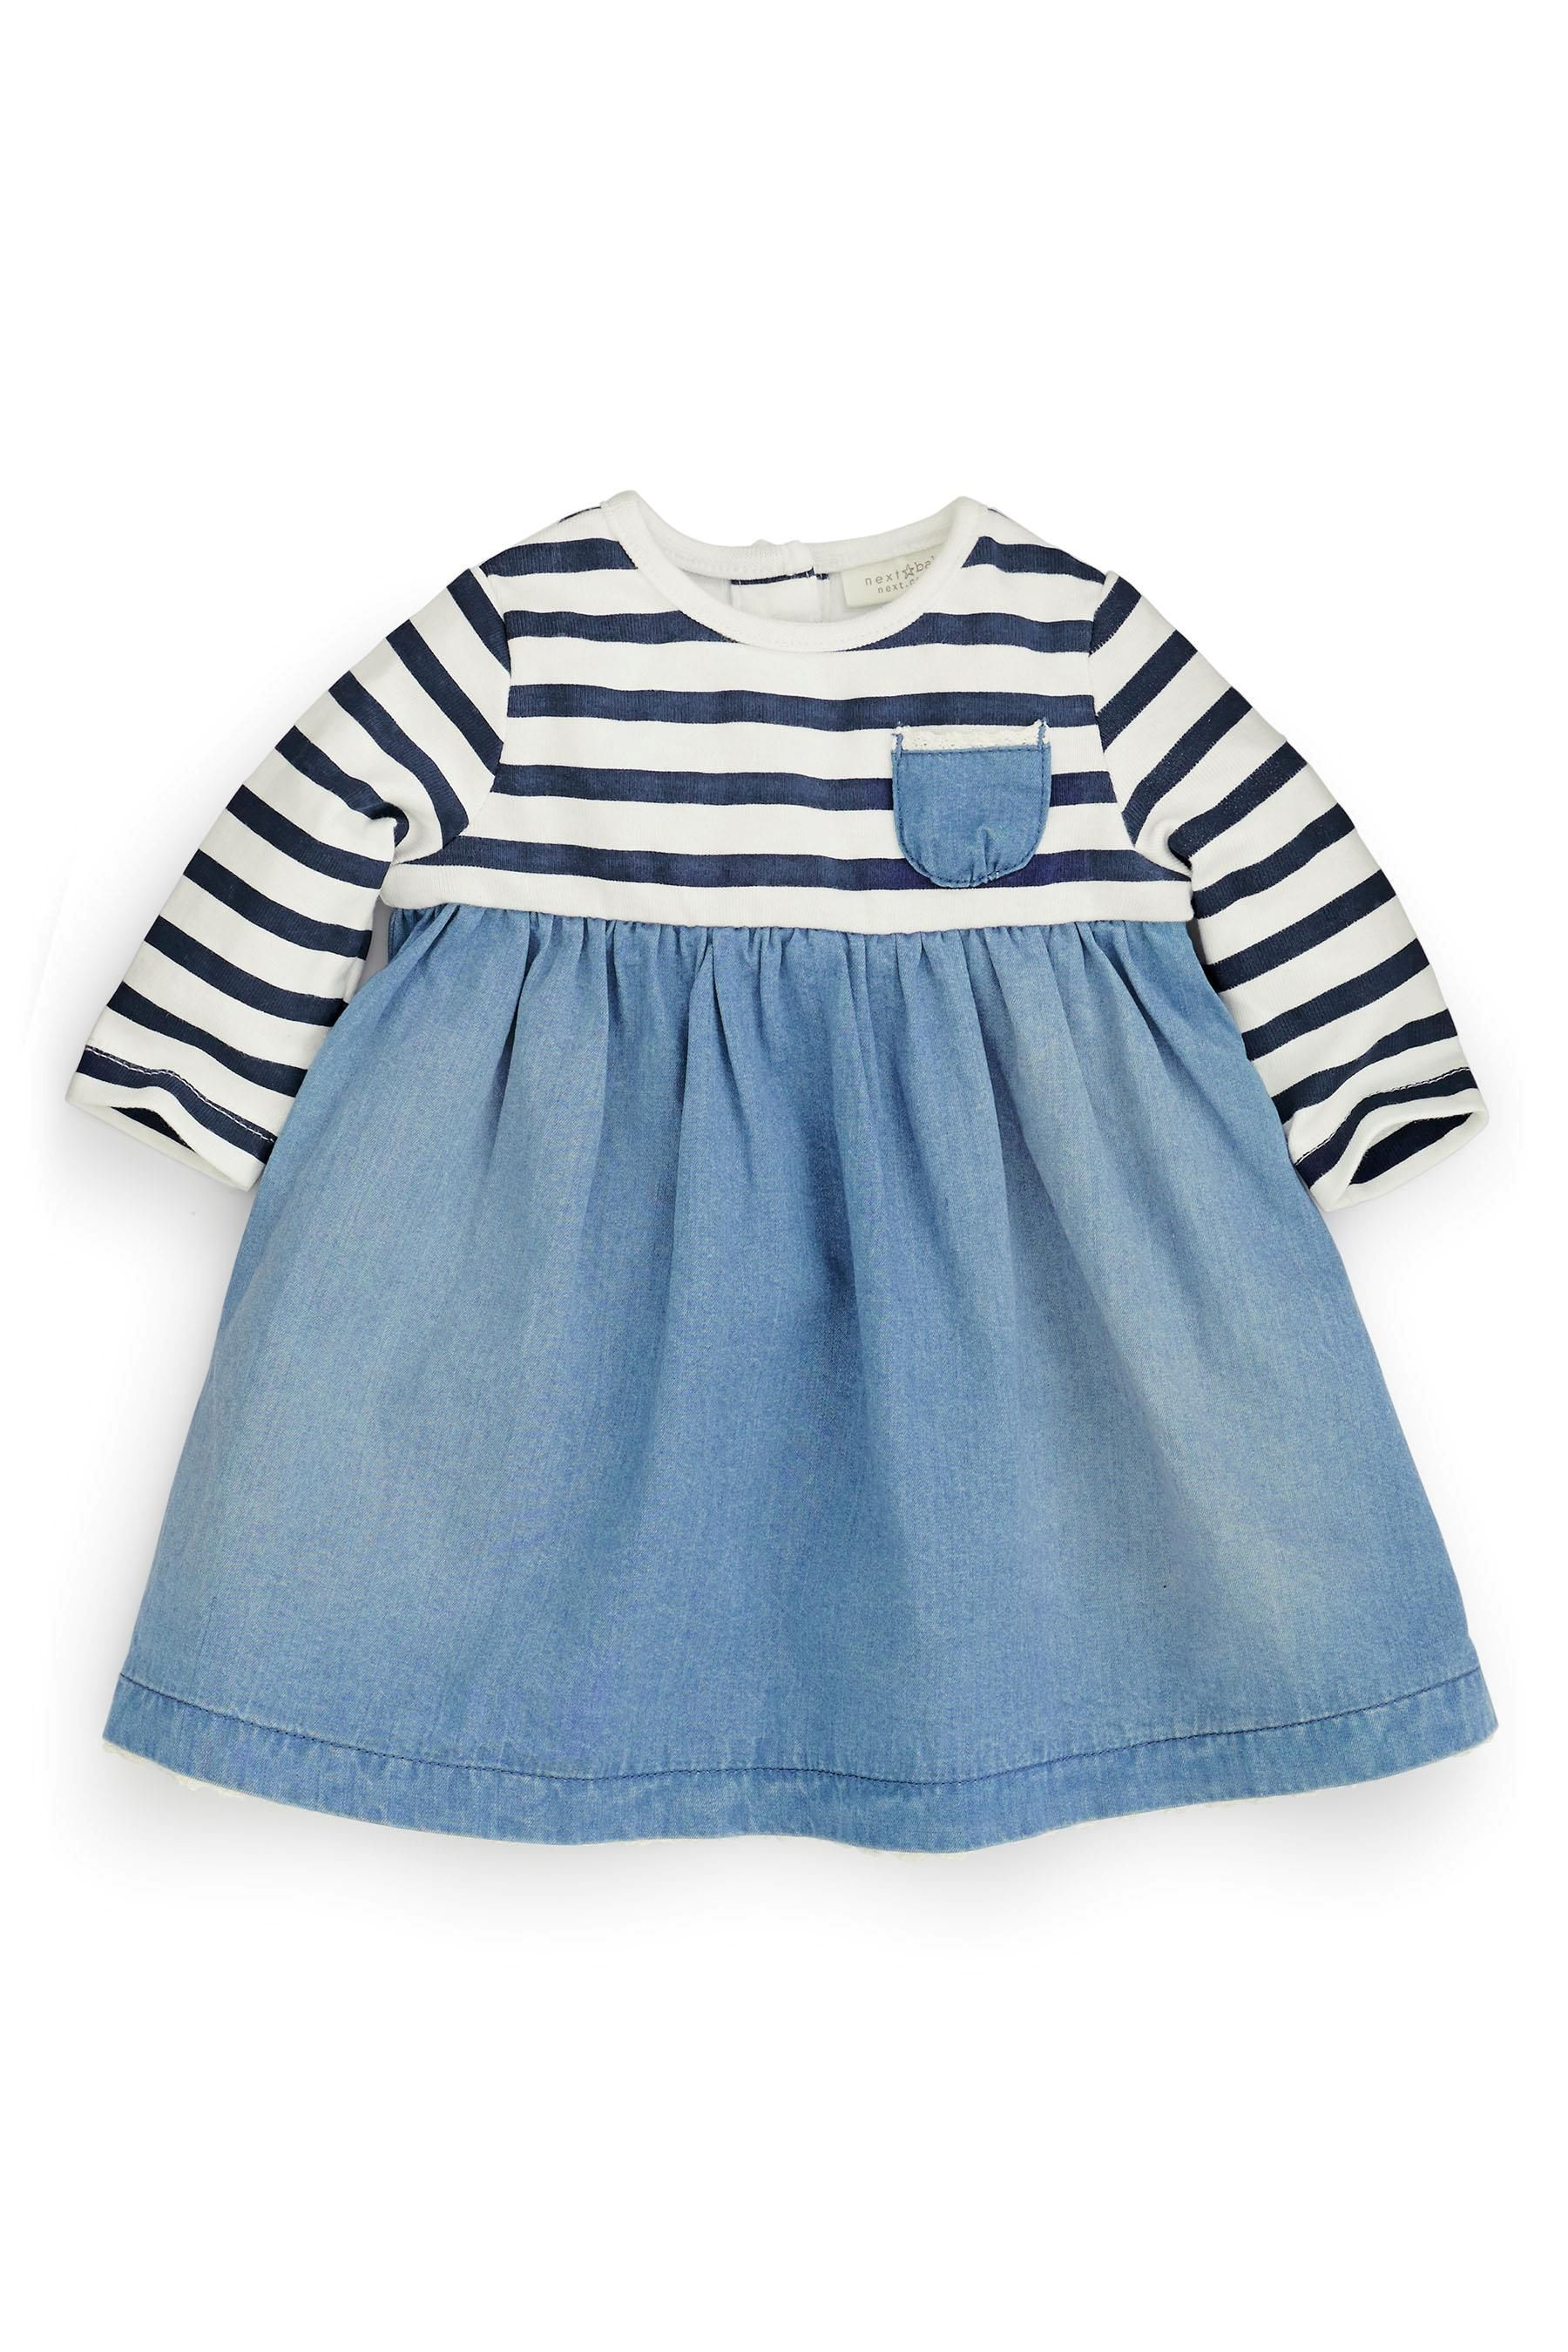 Buy Stripe Denim Dress And Tights Set (0-18mths) from the Next UK online shop